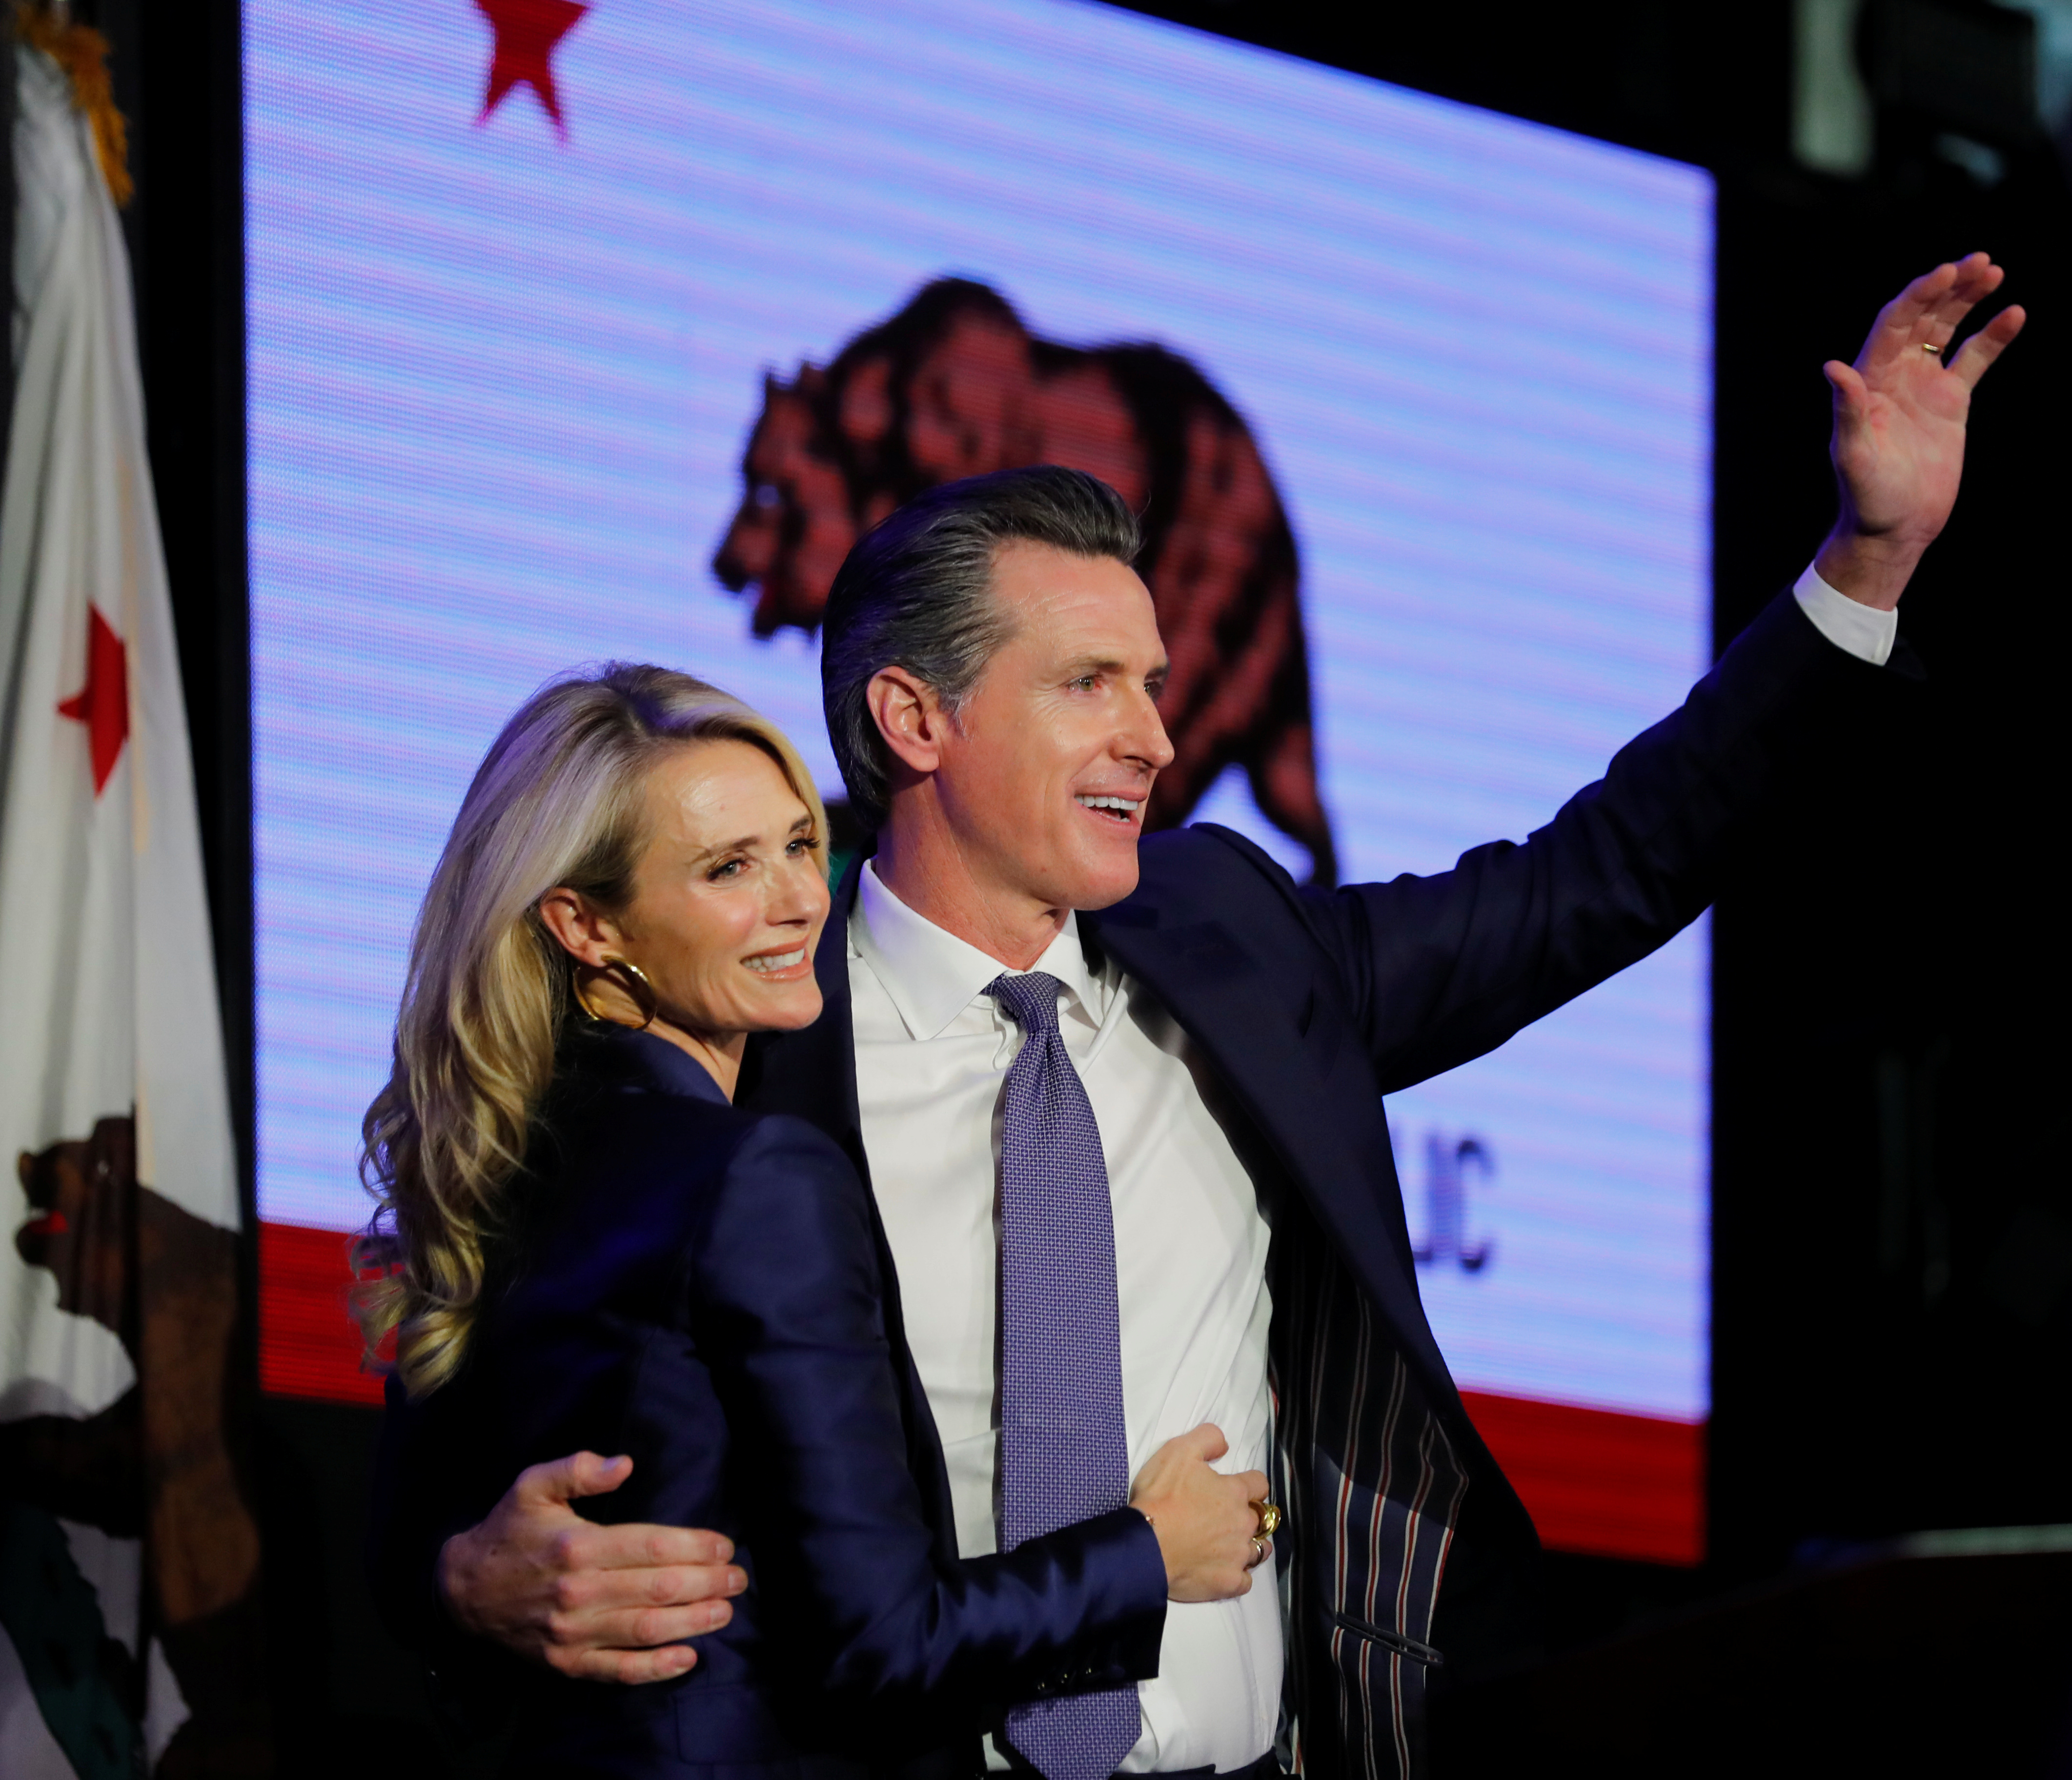 California Democratic gubernatorial candidate Gavin Newsom hugs his wife Jennifer as he celebrates being elected governor of the state during an election night party in Los Angeles, California, U.S. November 6, 2018. REUTERS/Mike Blake - RC1C6303E620